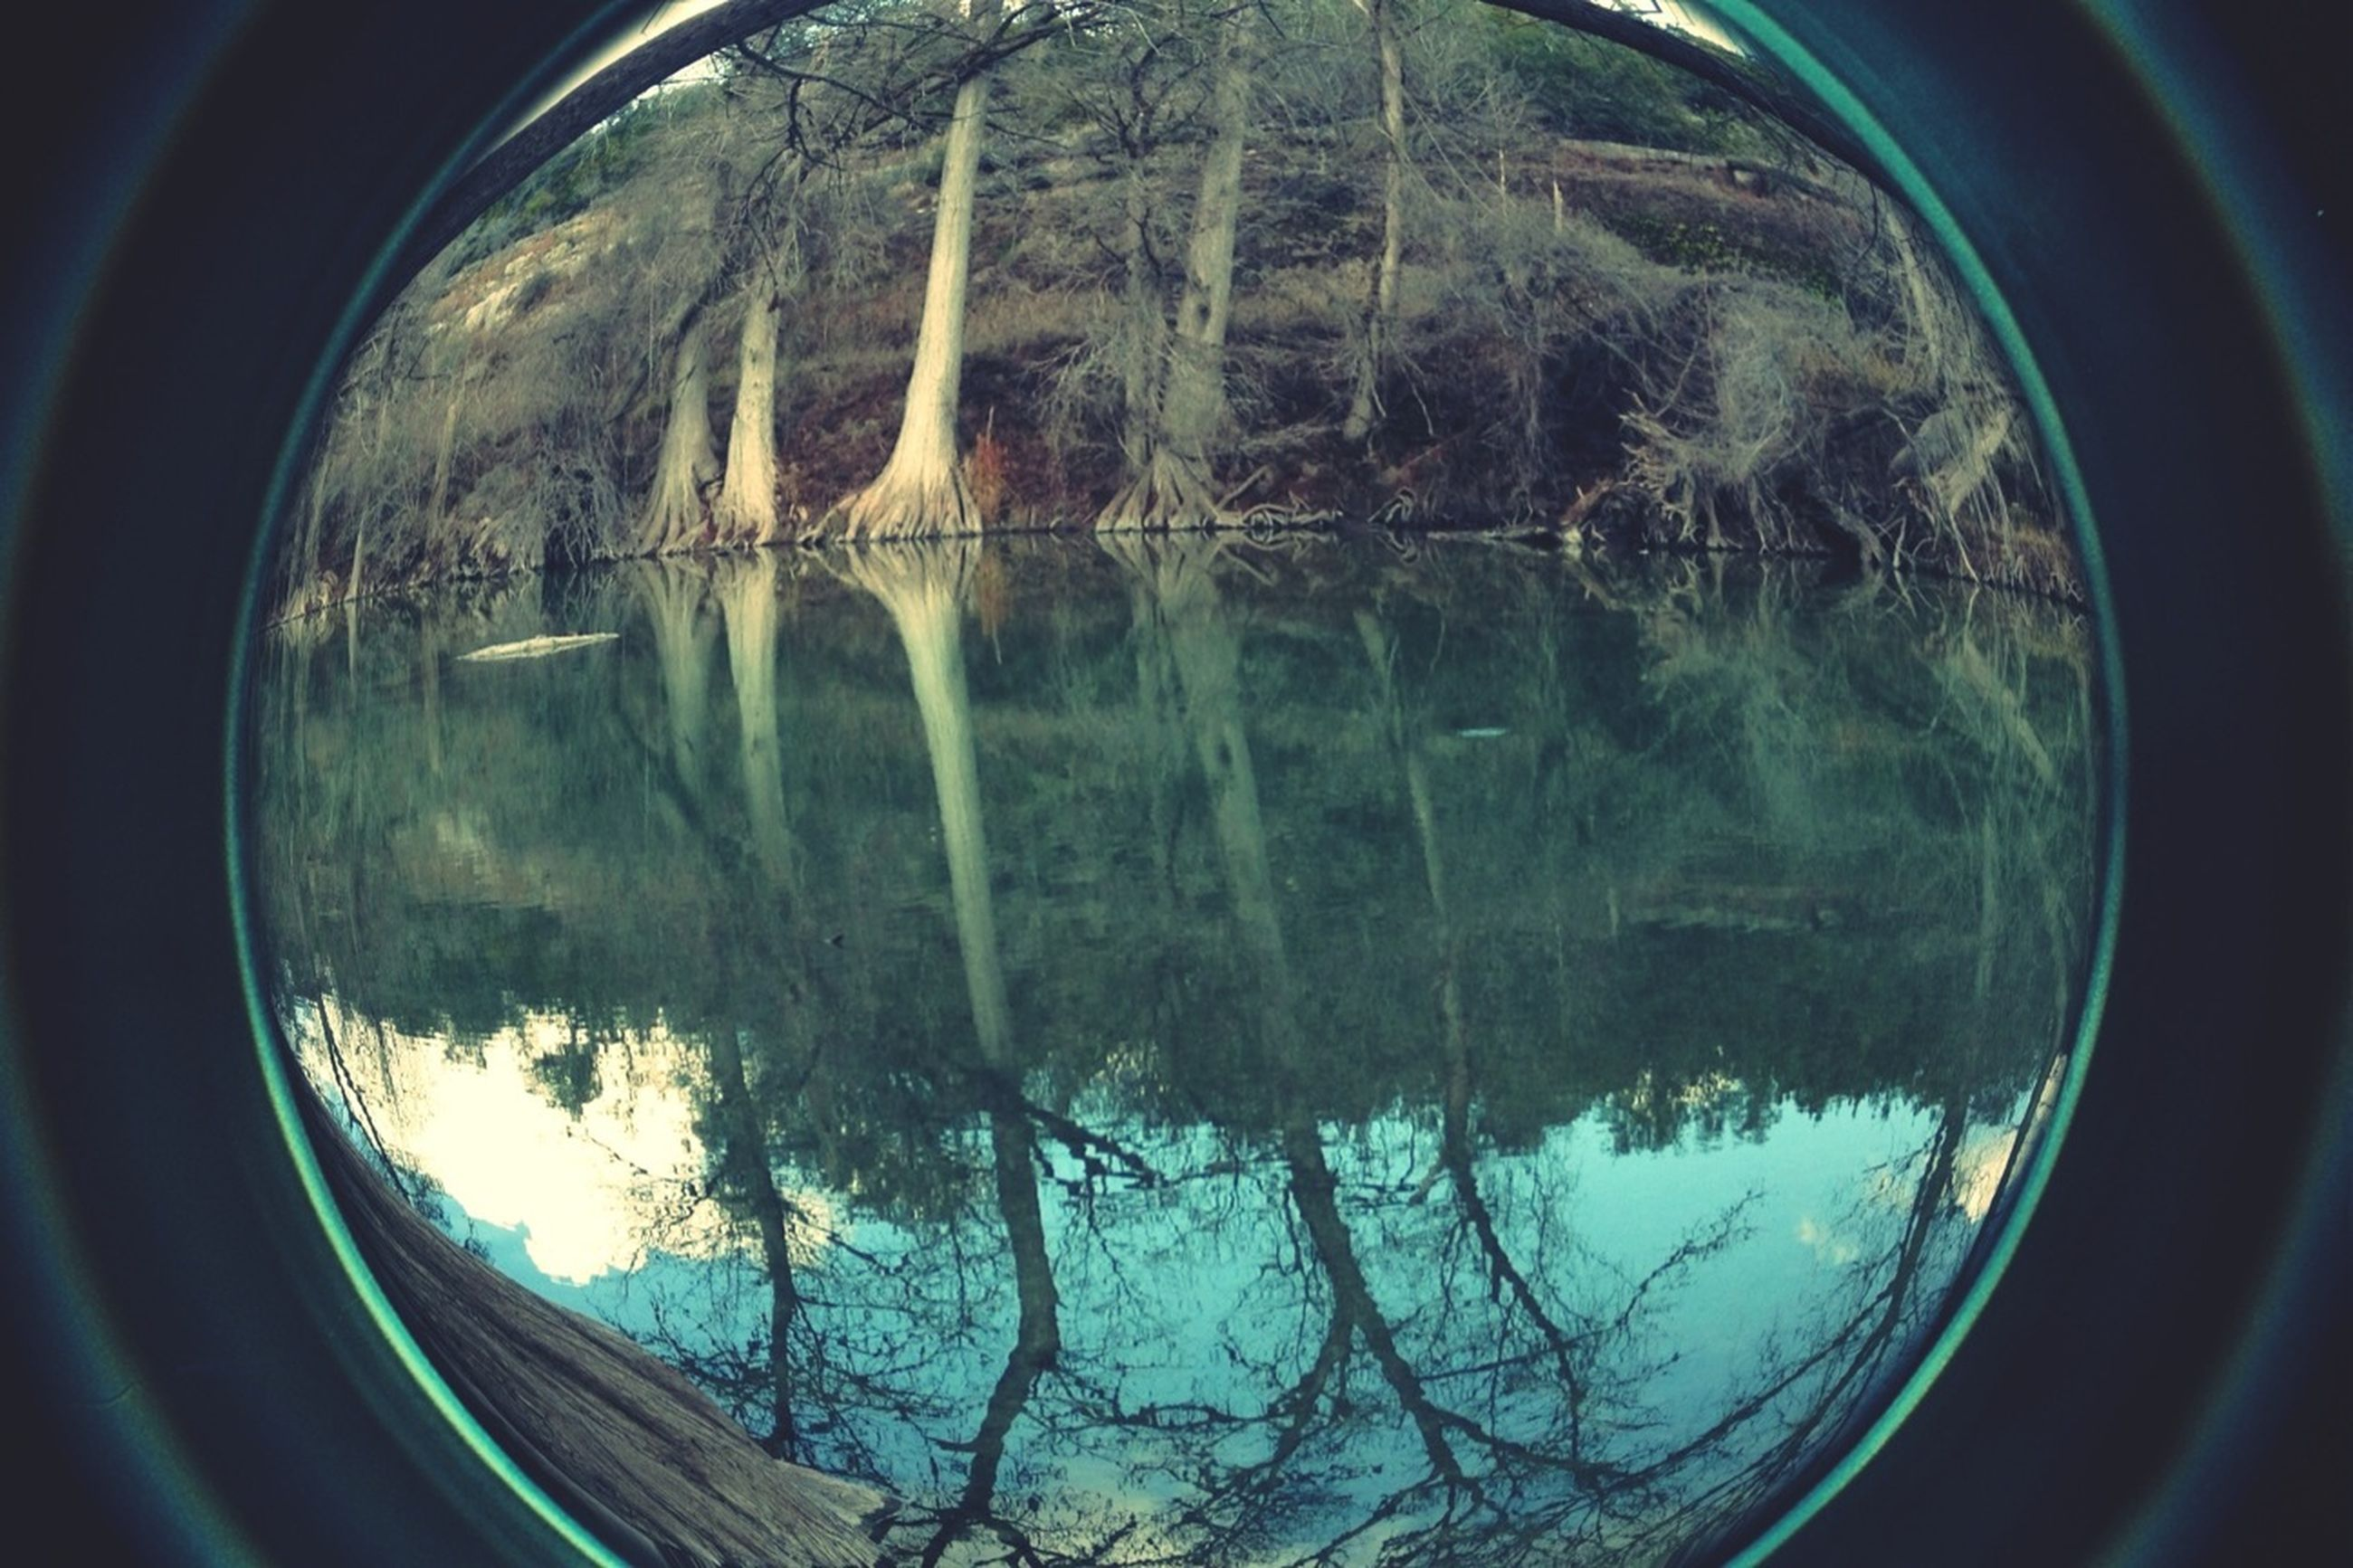 reflection, water, transparent, glass - material, window, tree, transportation, mode of transport, indoors, lake, sky, vehicle interior, fish-eye lens, nature, standing water, circle, day, part of, glass, no people